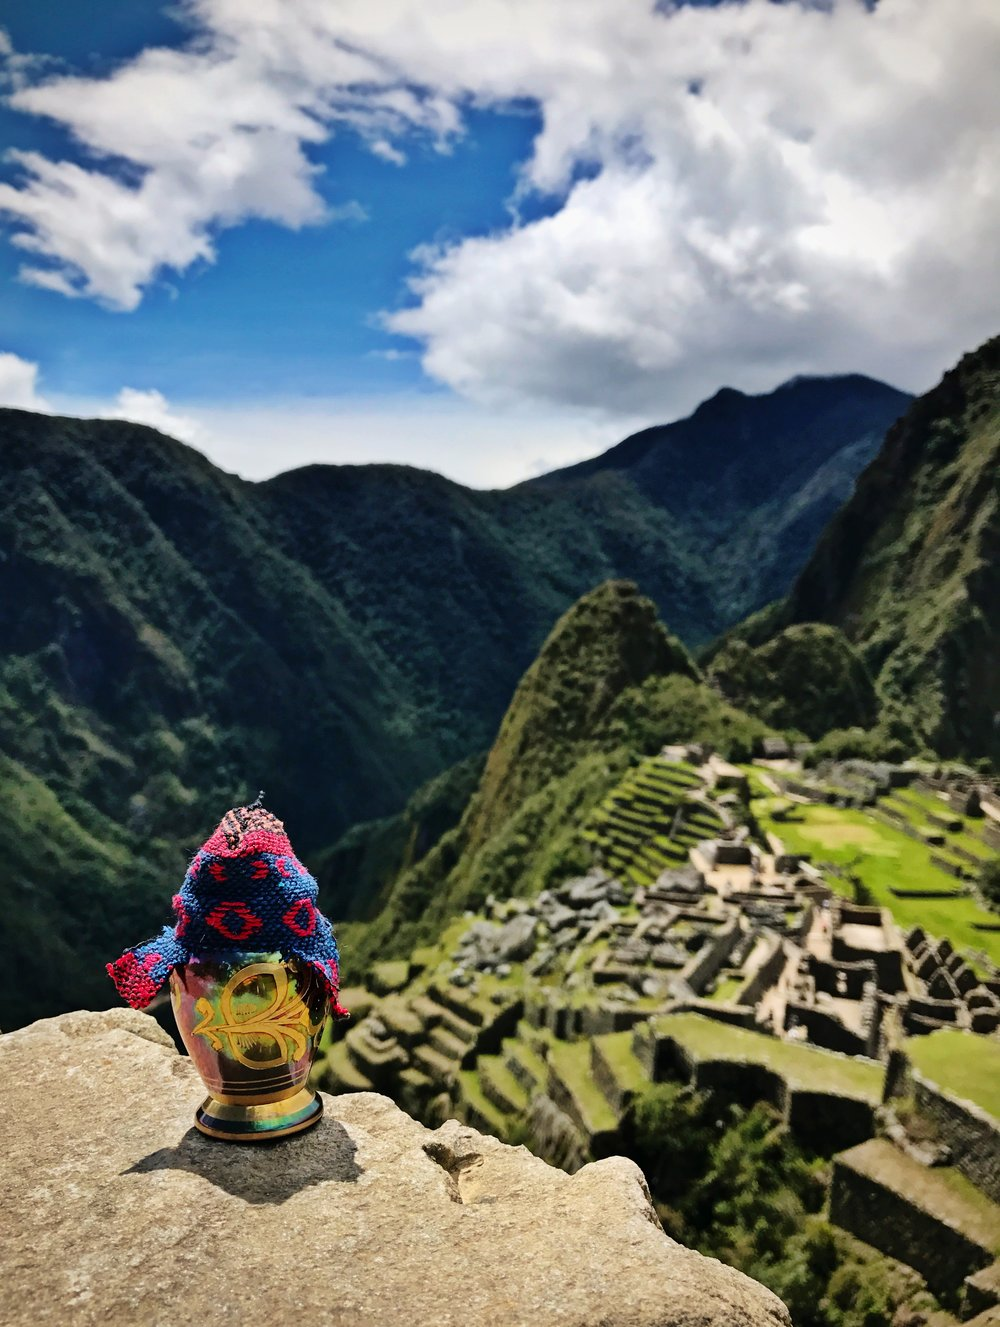 Polly & Peru   Like Polly, I just LOVE to travel. I've been traveling a lot over the past few years, mainly for work as my freelance photography business has blossomed. But sometimes you get a little road-weary. You come home from a long trip, or a long series of back-to-back trips, and realize…  continue reading